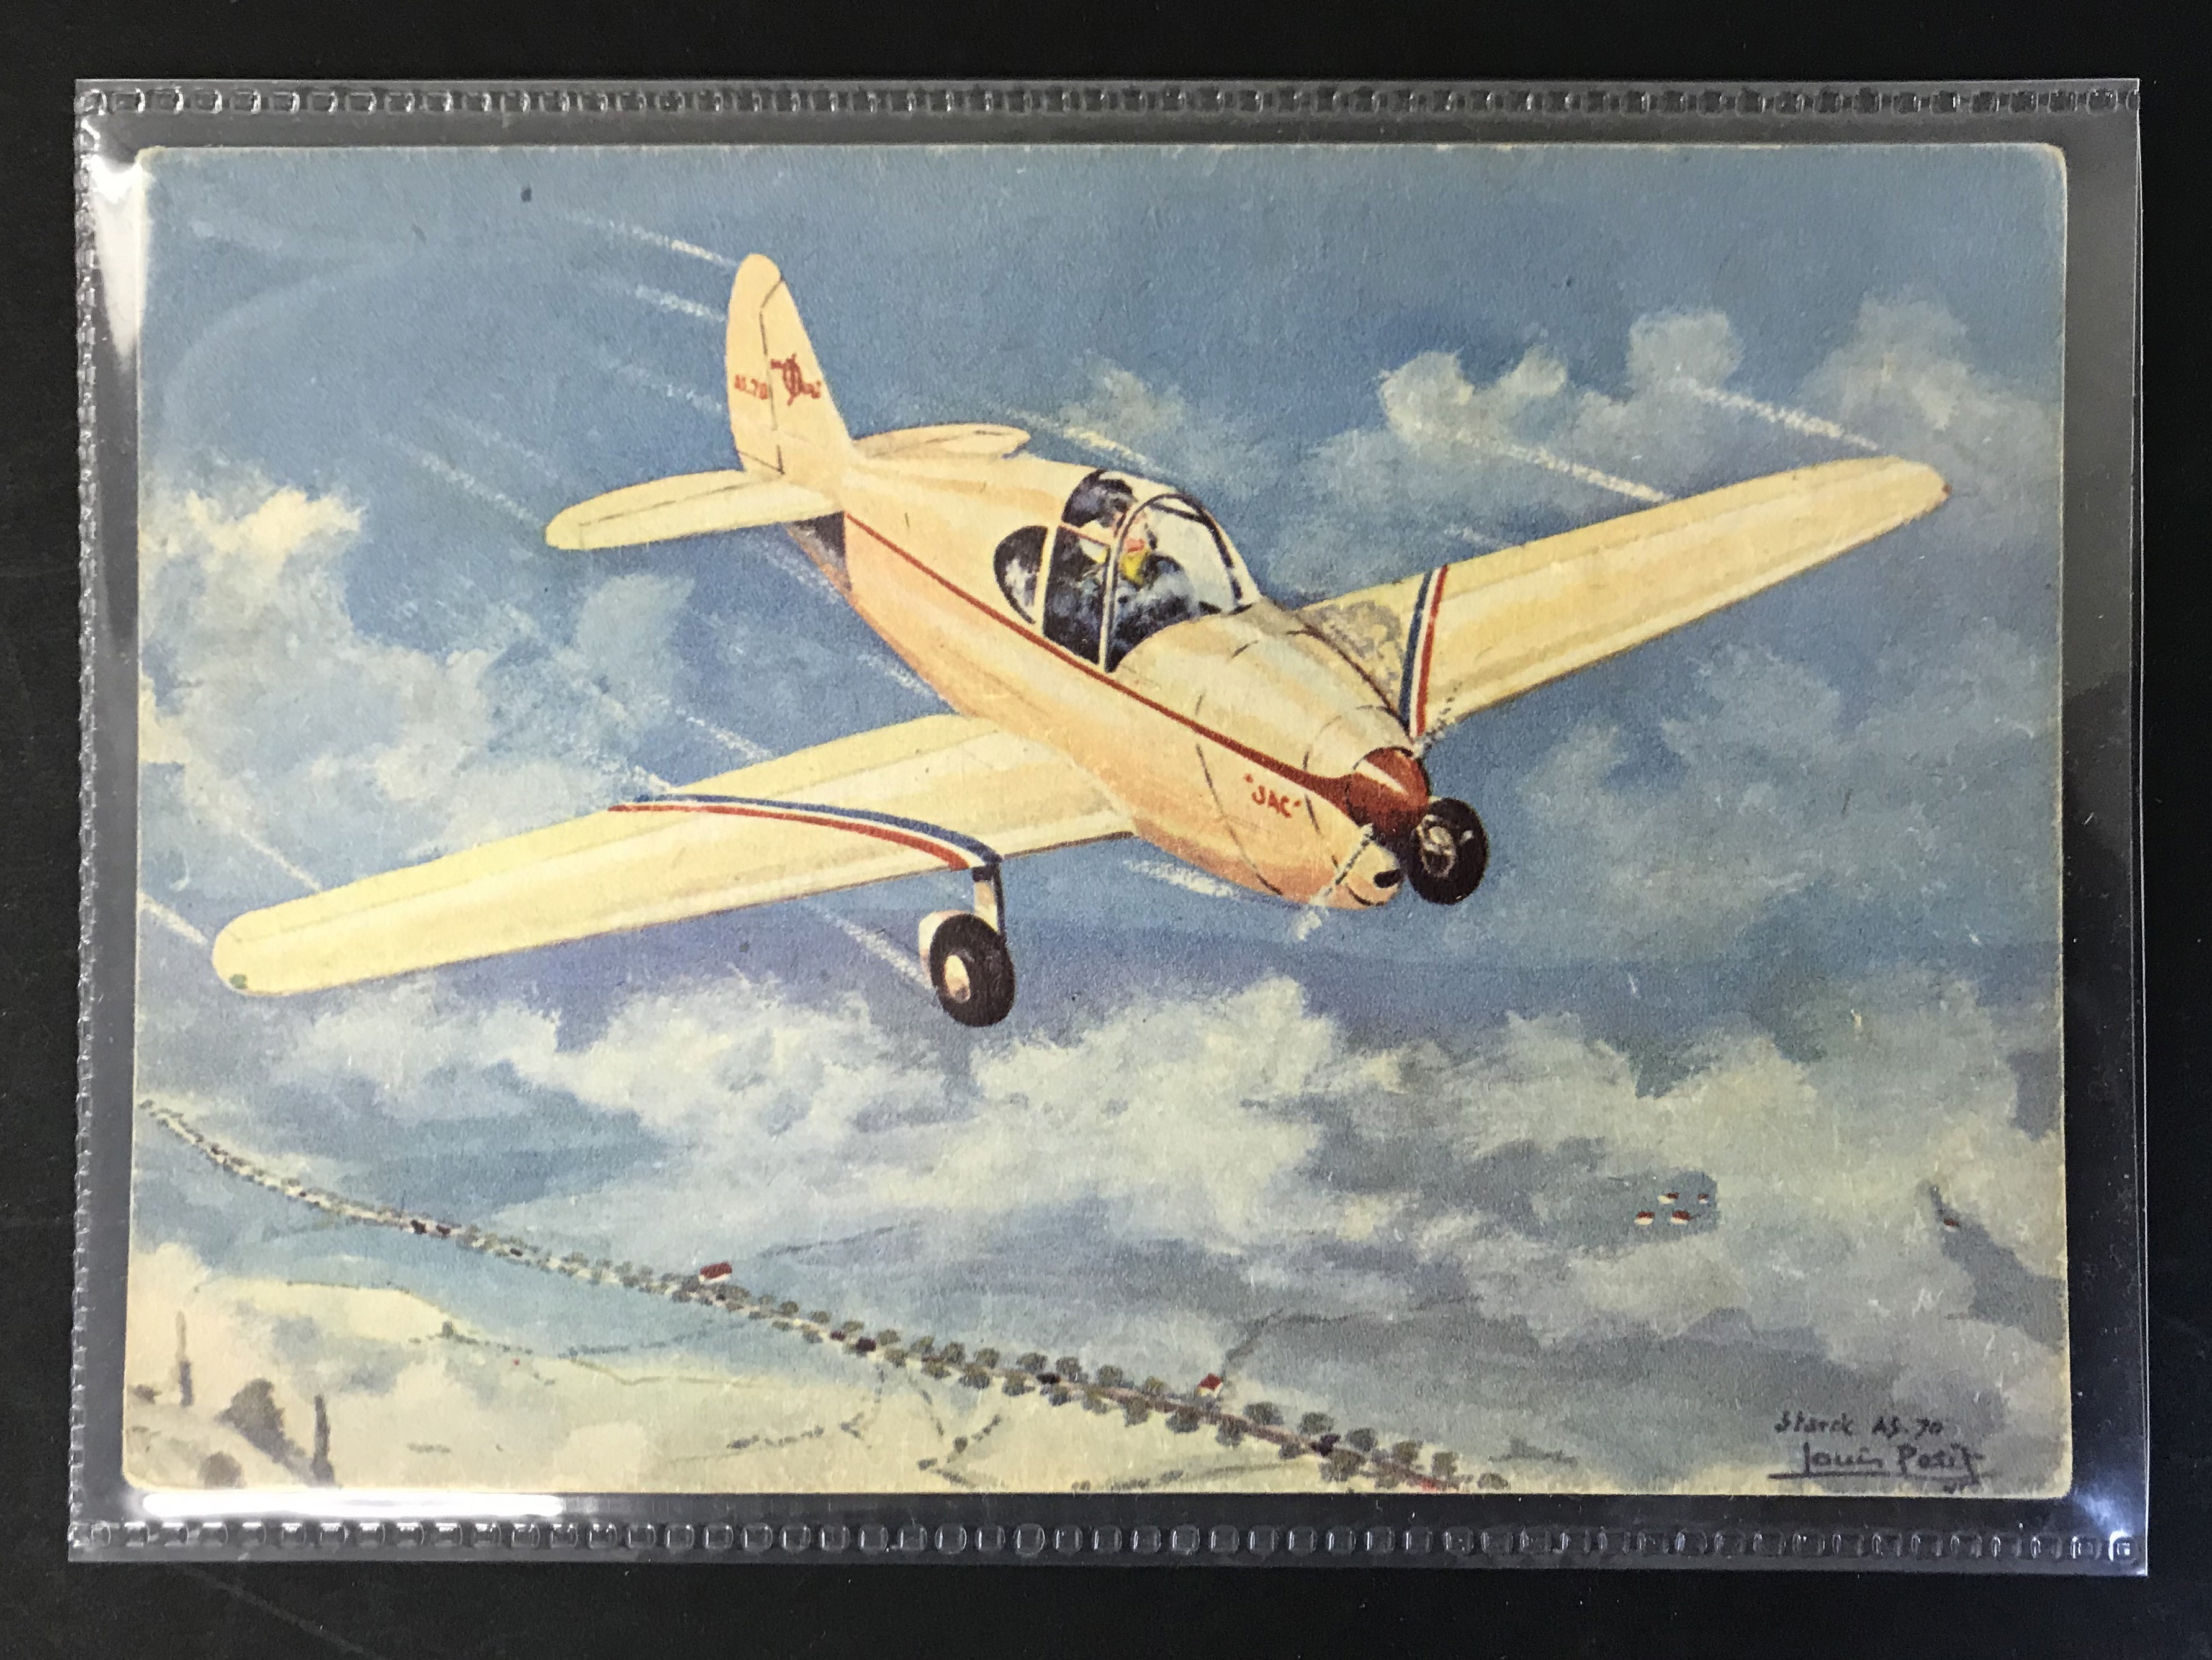 GROUP OF TWELVE FRENCH PLANES RELATED POSTCARDS - VARIOUS SERIES - Image 4 of 14